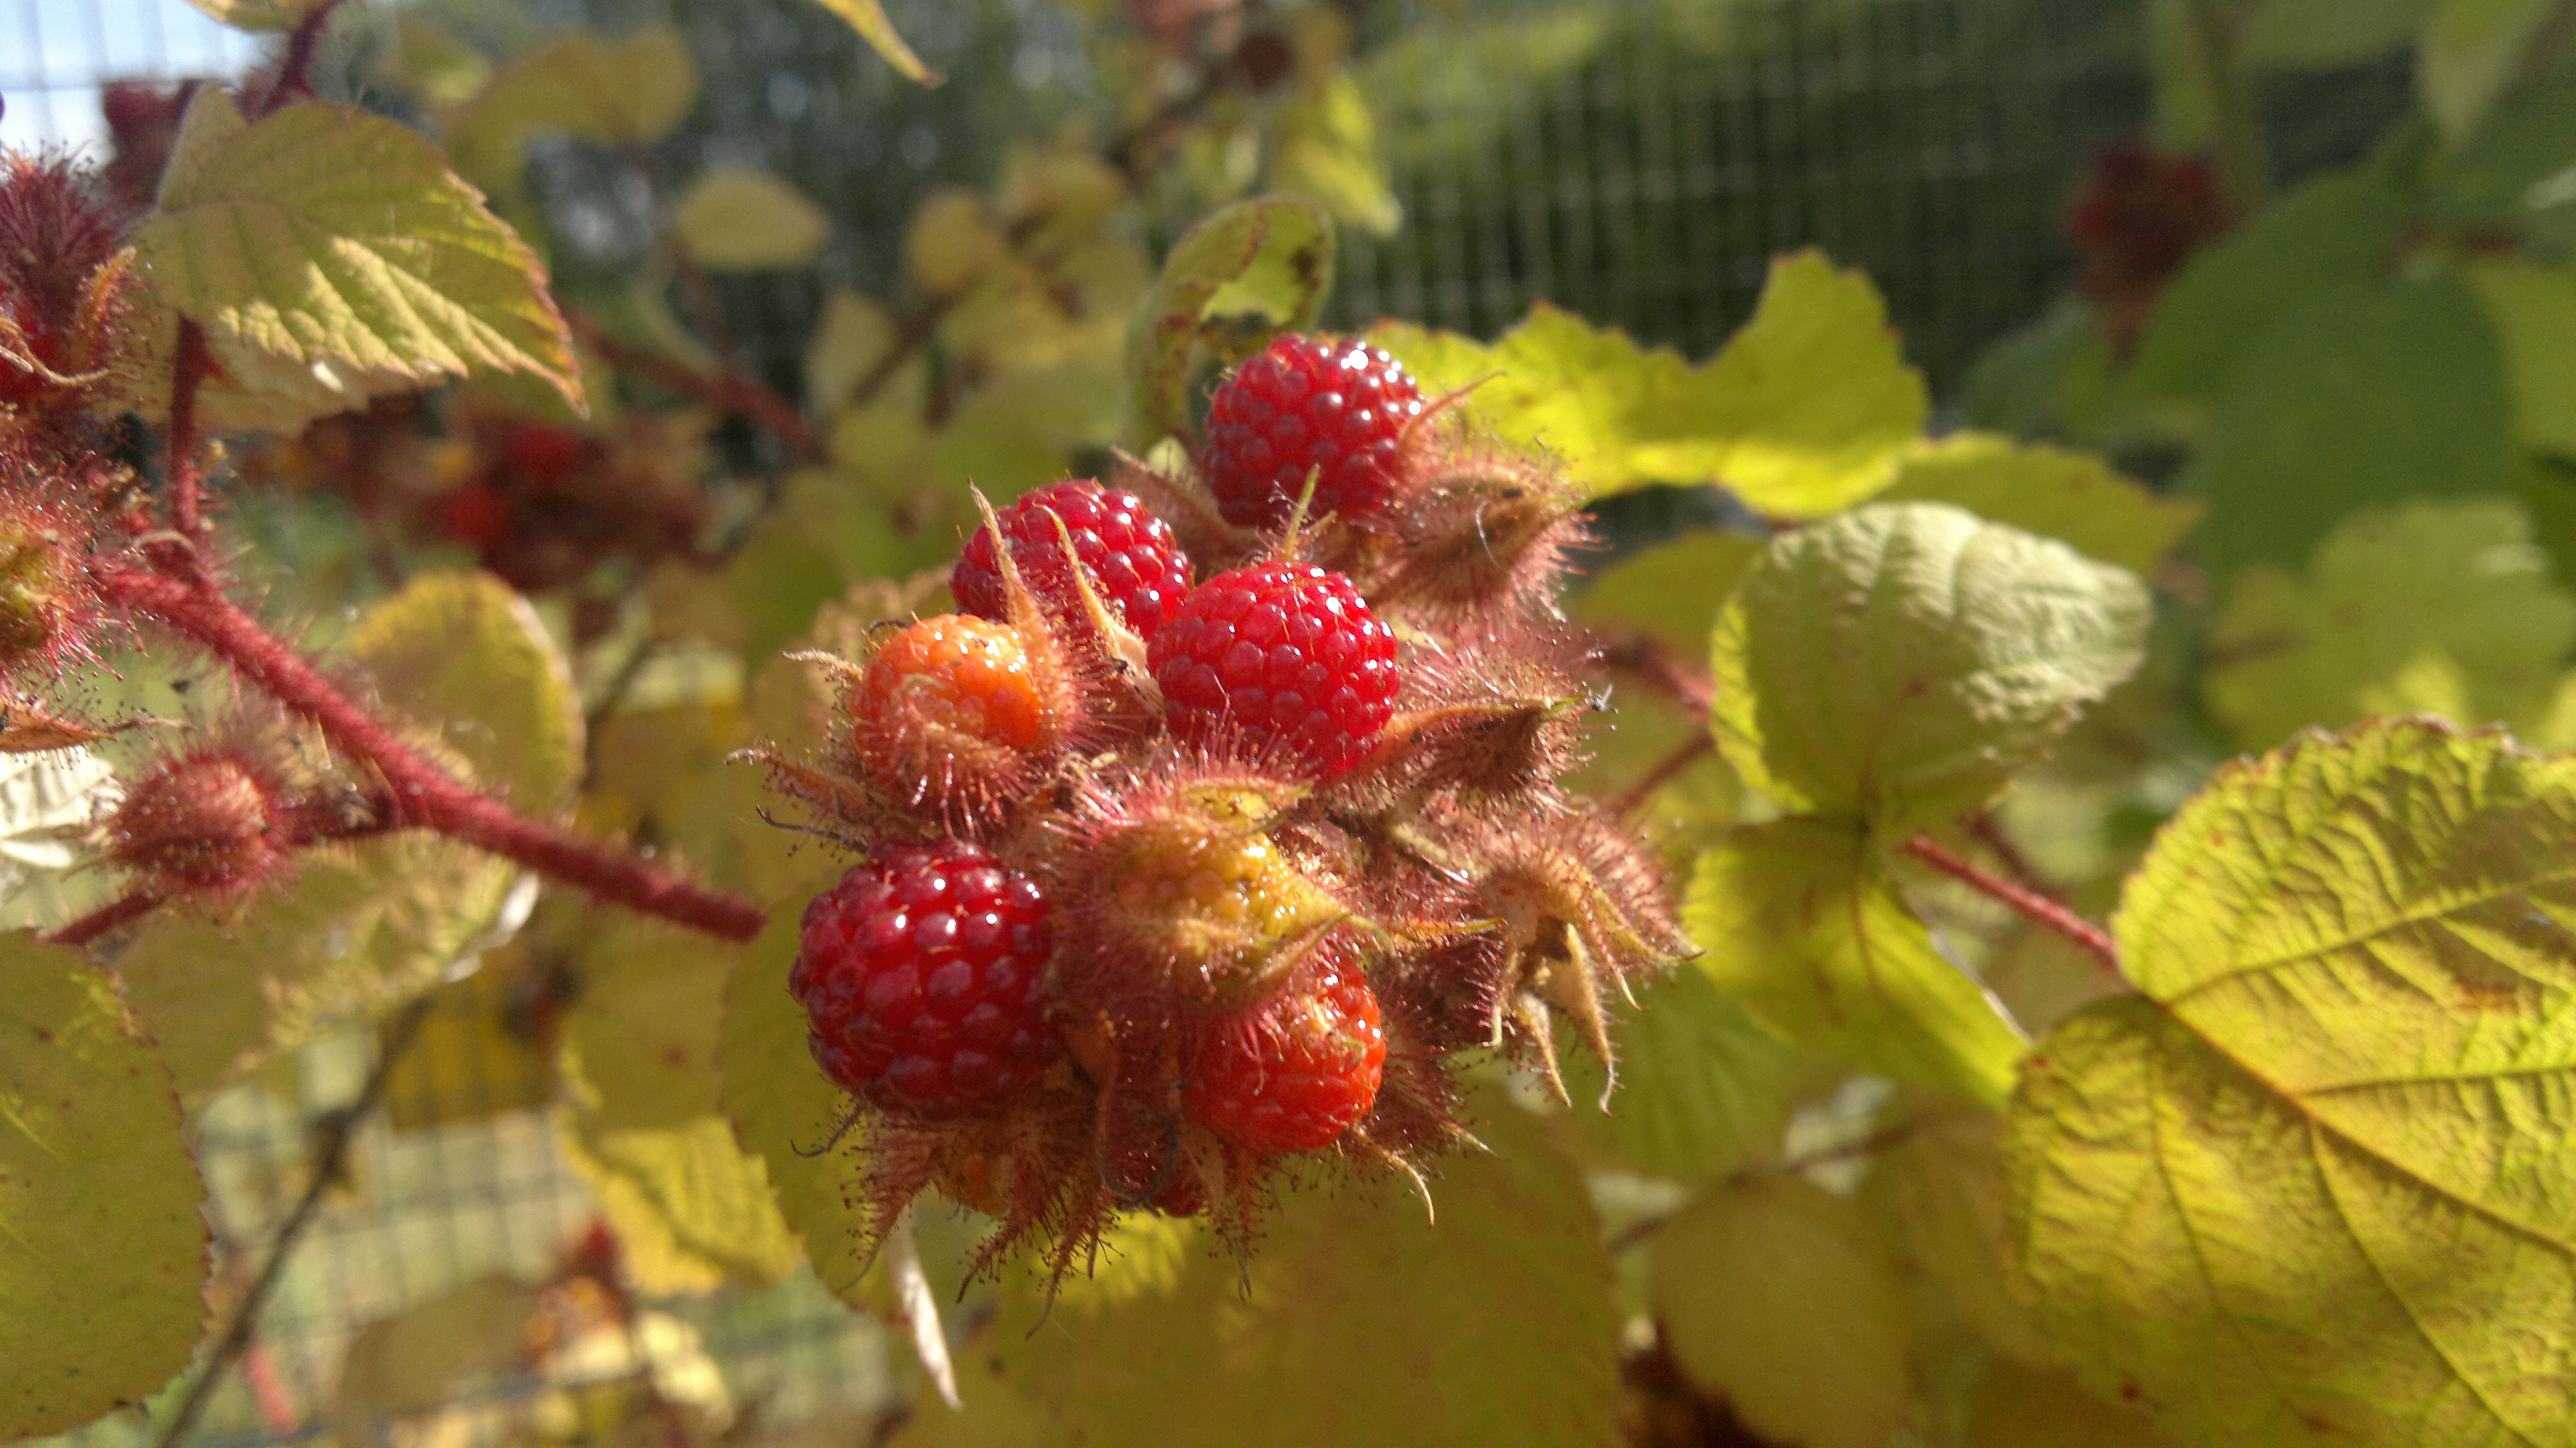 Cluster of wineberries in various states of ripeness